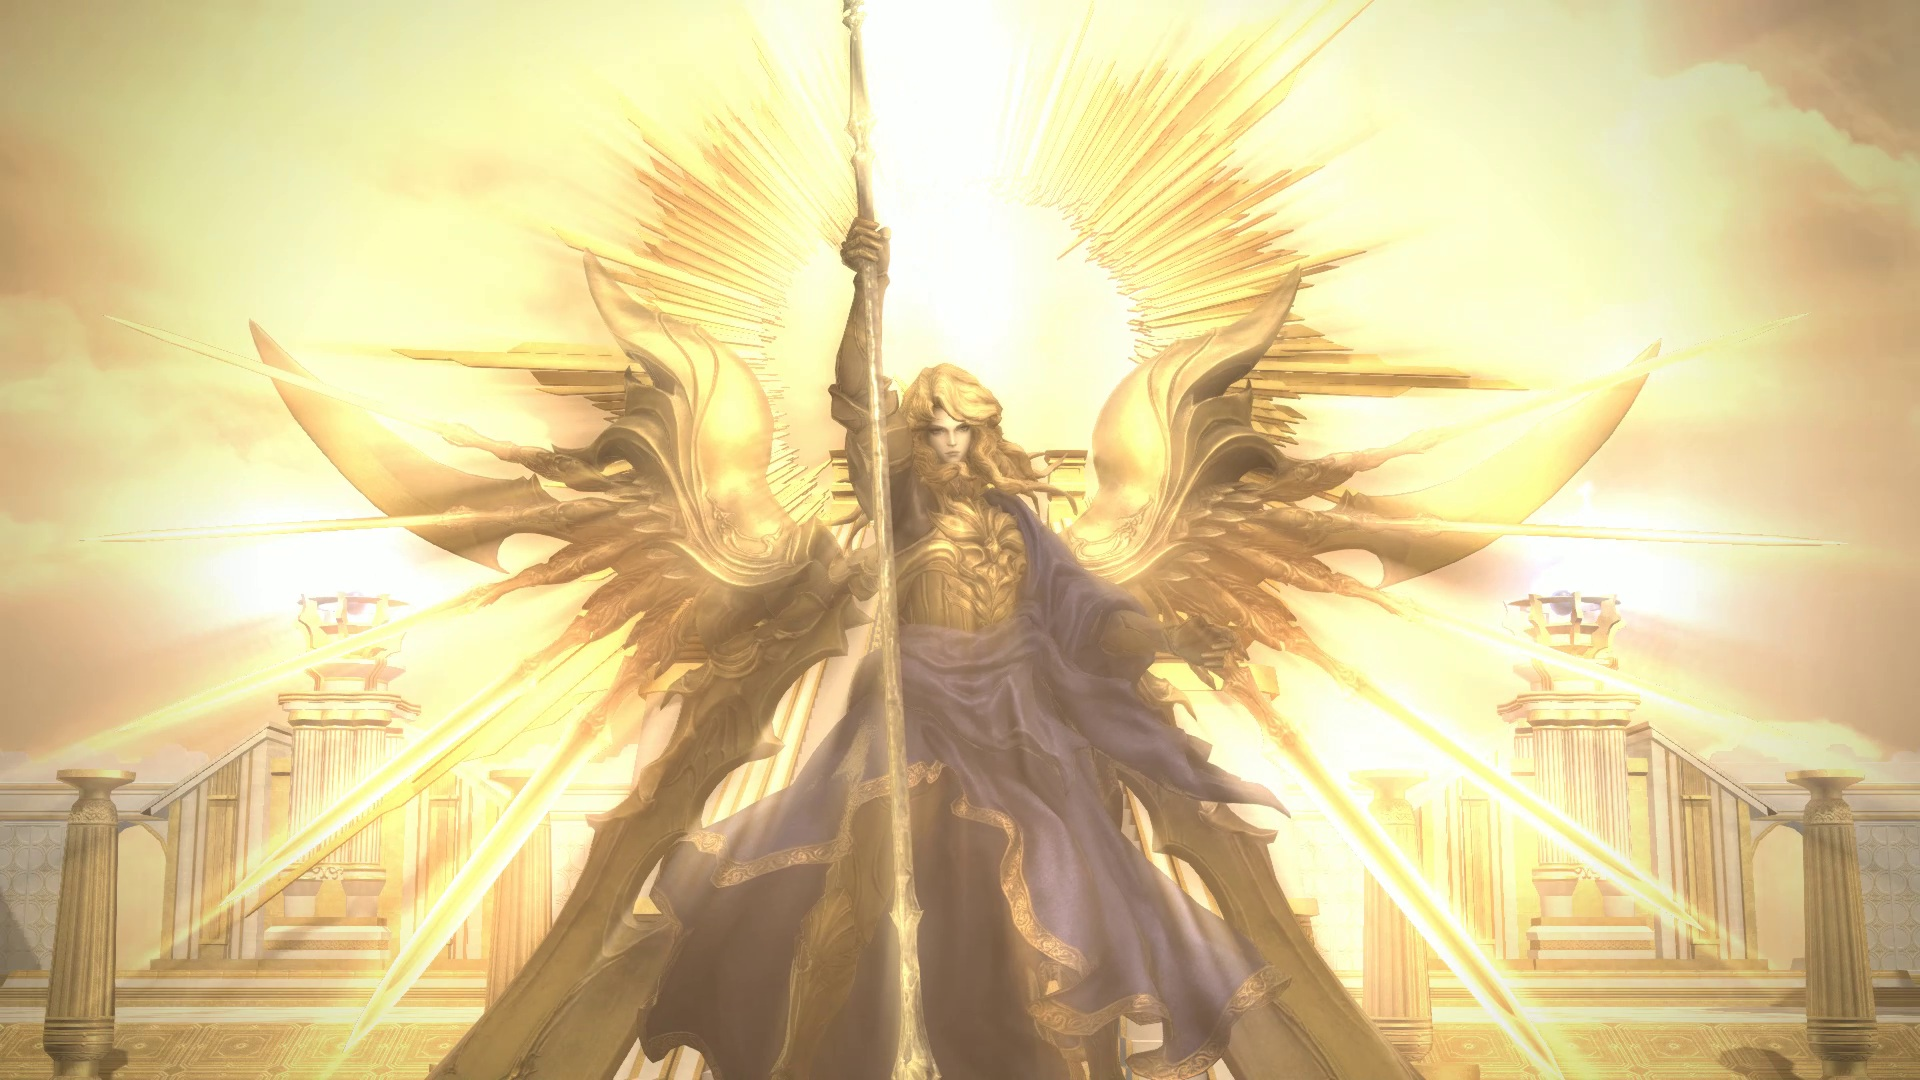 Final Fantasy 14: Shadowbringers - Innocence, The Crown of the